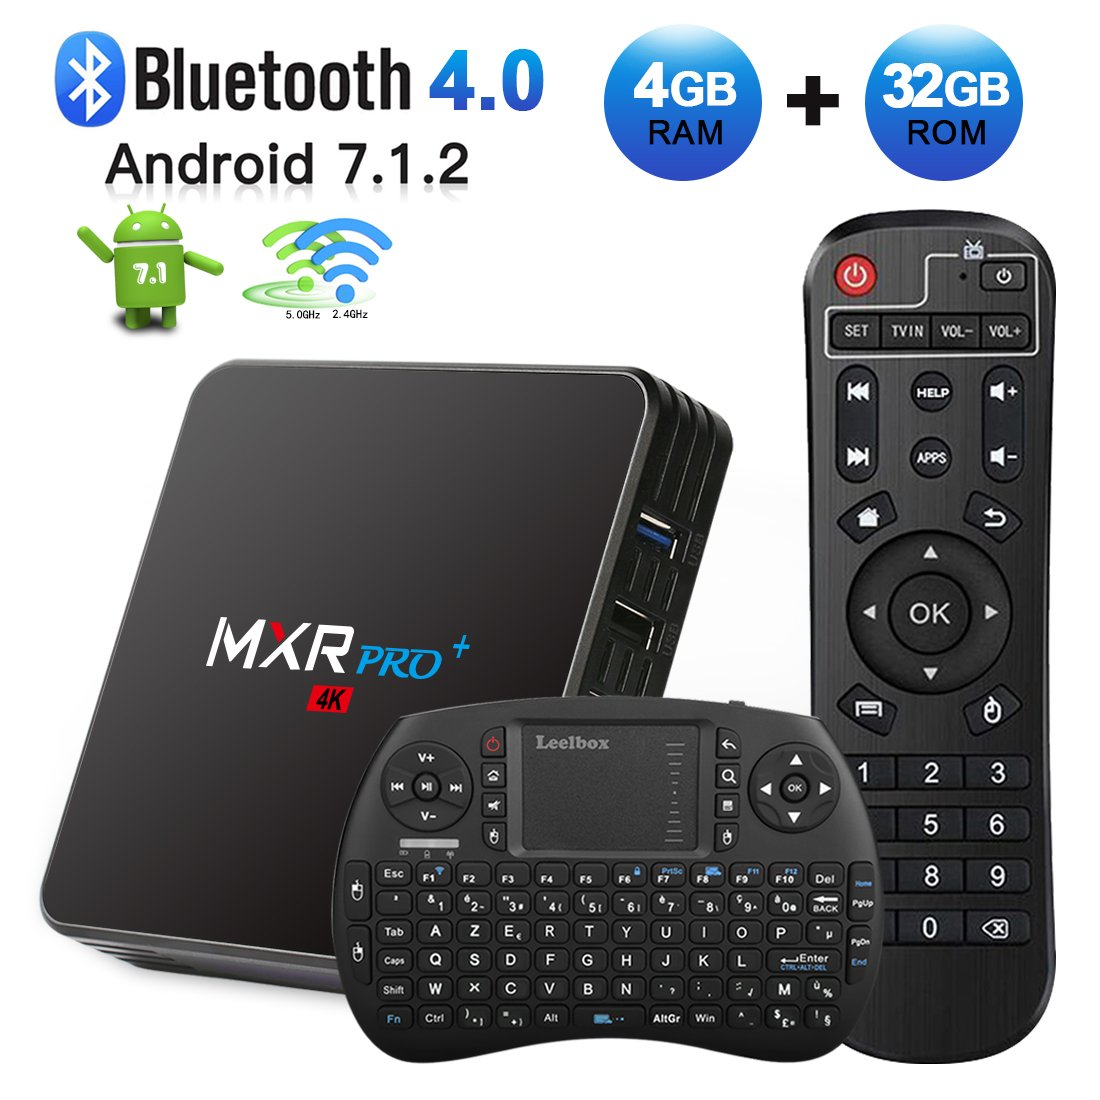 Android TV Box, HAOSIHD MXR Pro Plus Android 7.1 TV Box with Remote Control & Mini Keyboard, 4GB RAM 32GB ROM RK3328 Quad-core, Support 4K Full HD Dual-Band Wi-Fi 2.4/5Ghz BT 4.0 Smart TV Box by HAOSIHD